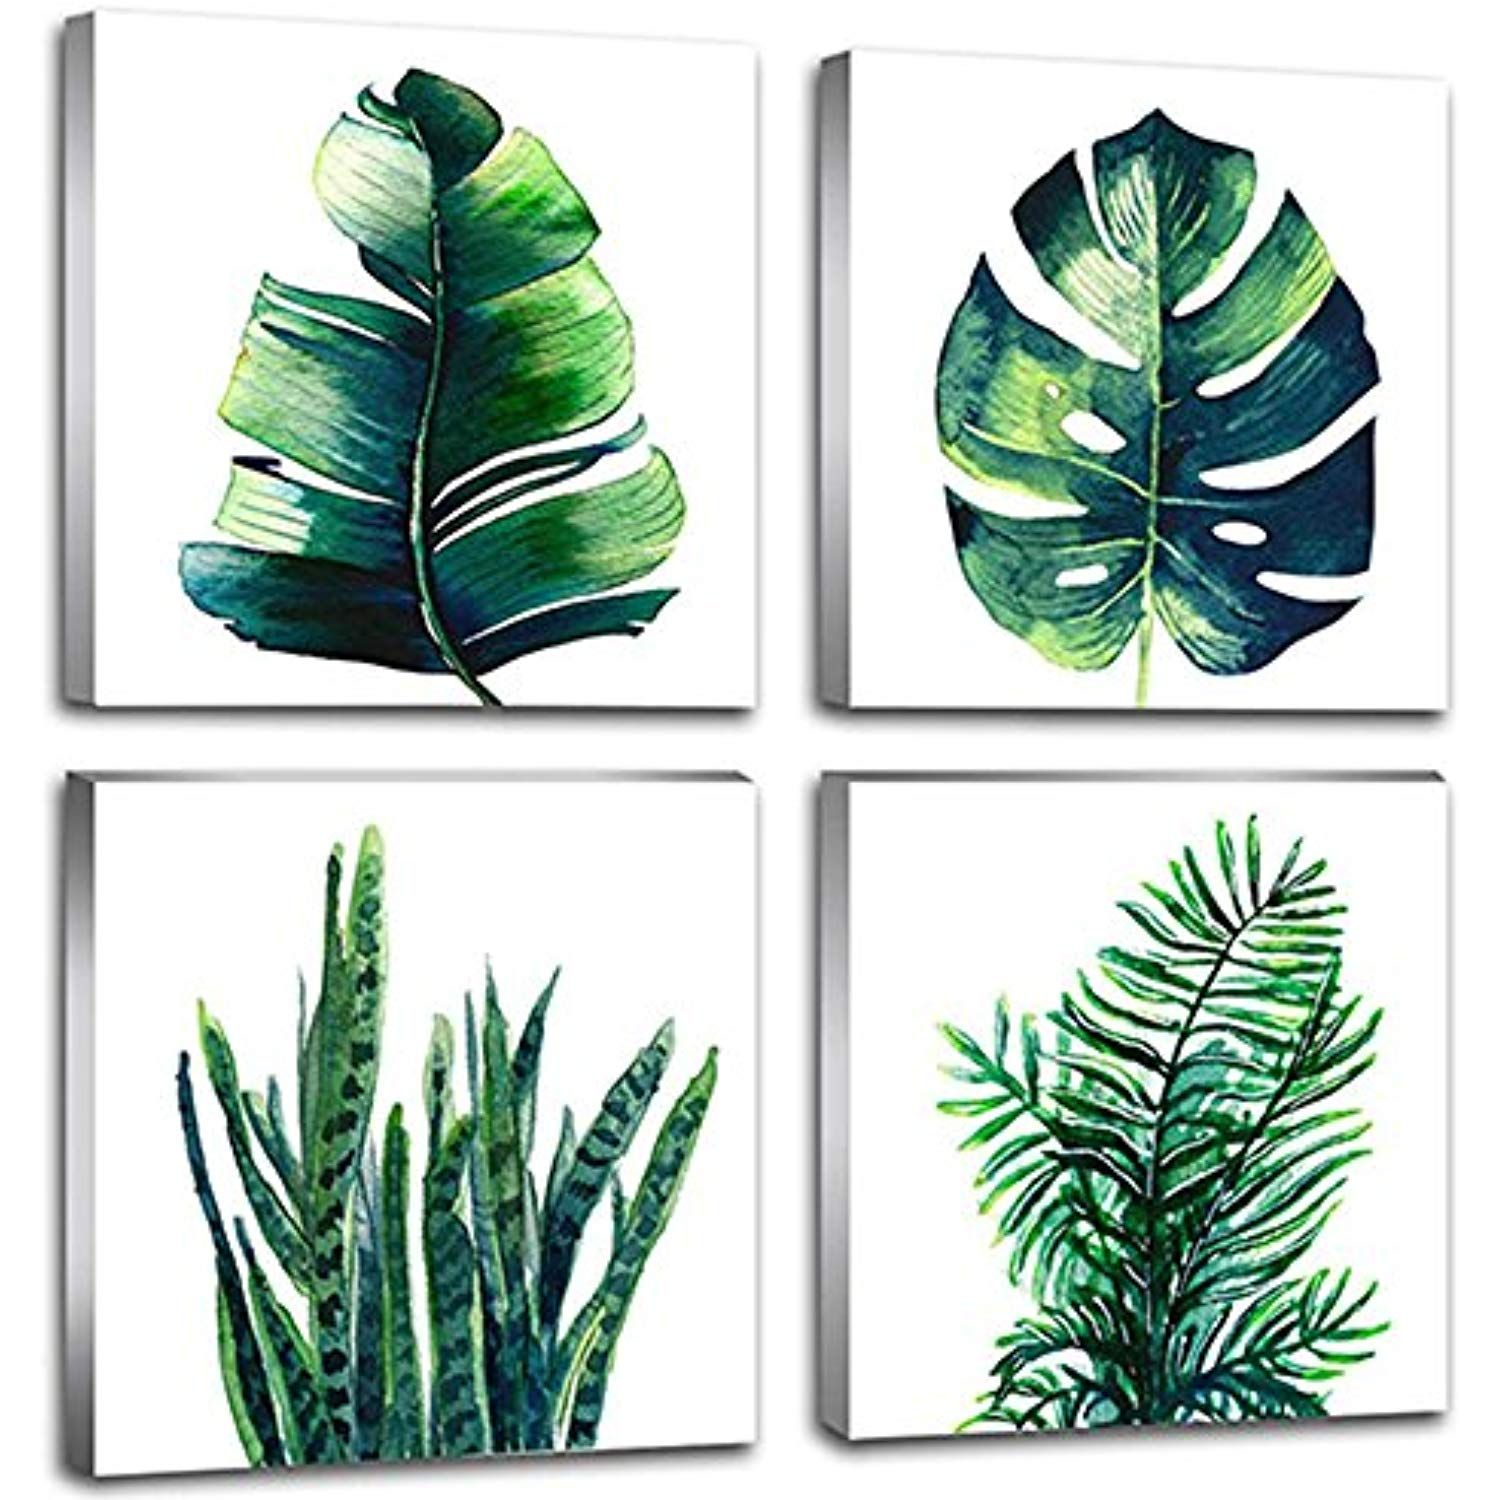 Leaf Home Wall Decorations Art Decor For Bathroom Bedroom Pictures